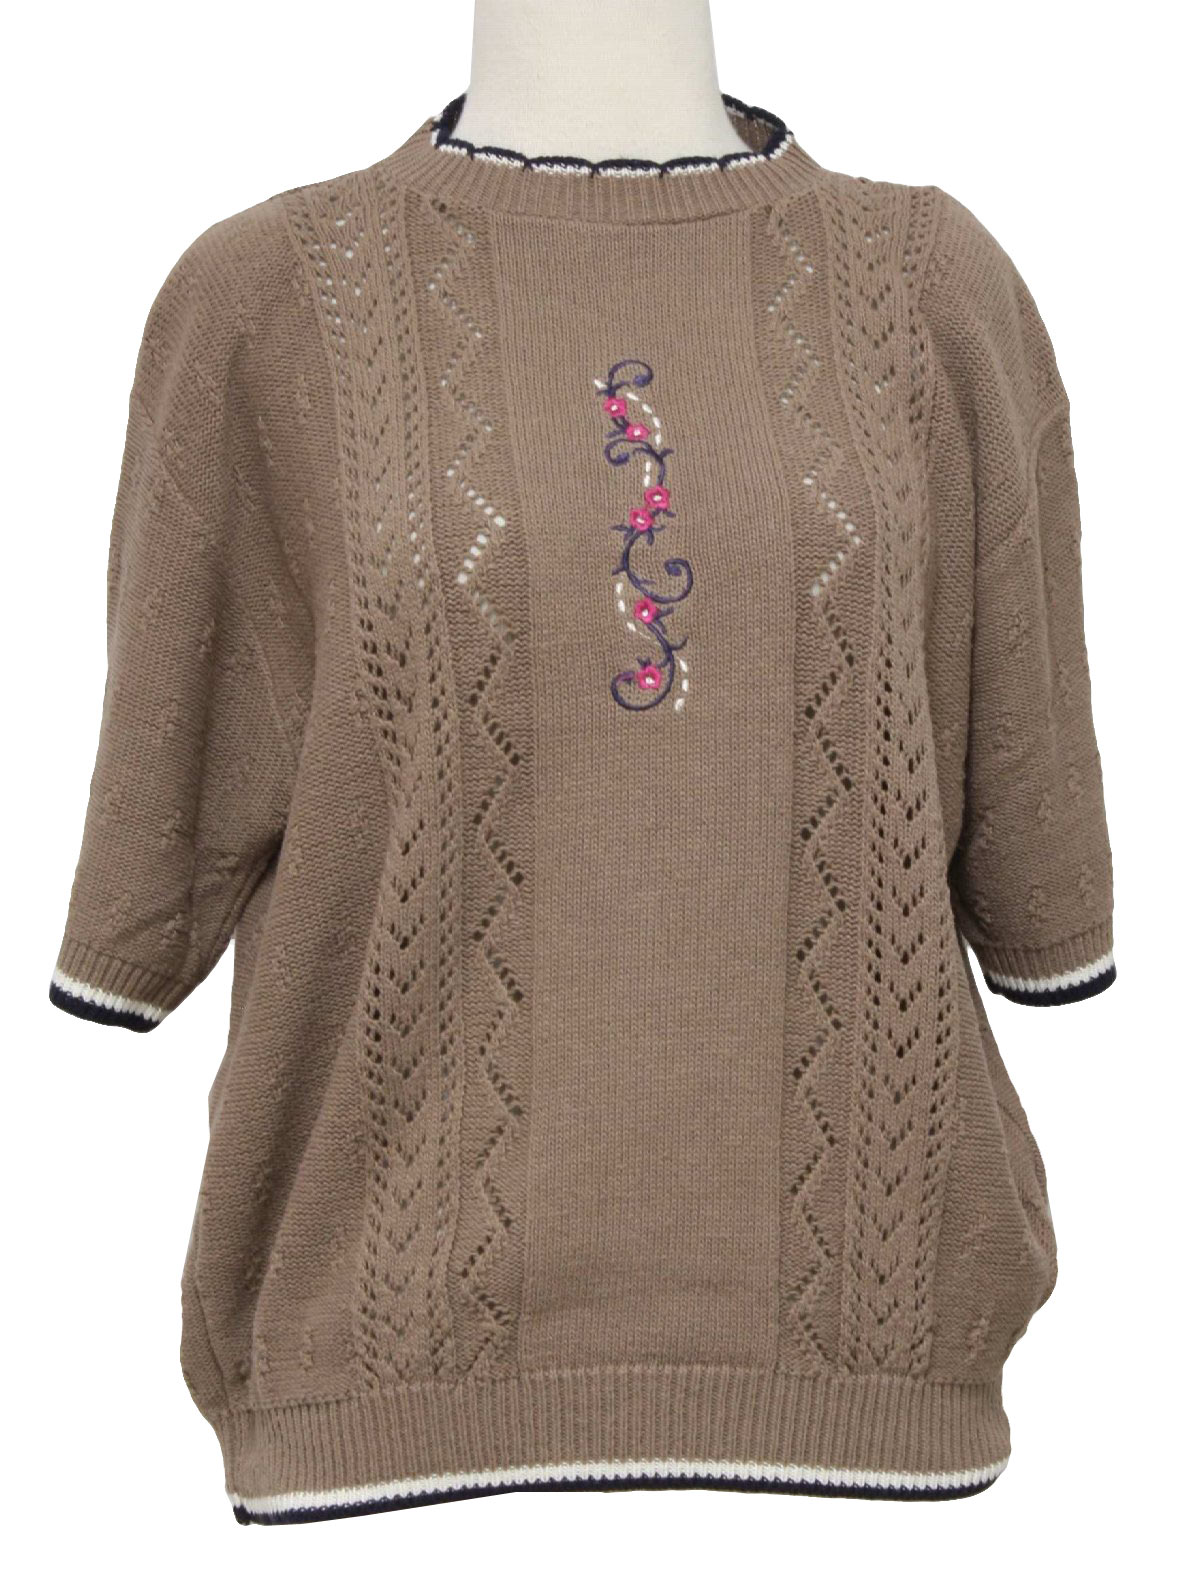 Nineties Missing Label Sweater: 90s -Missing Label- Womens taupe ...